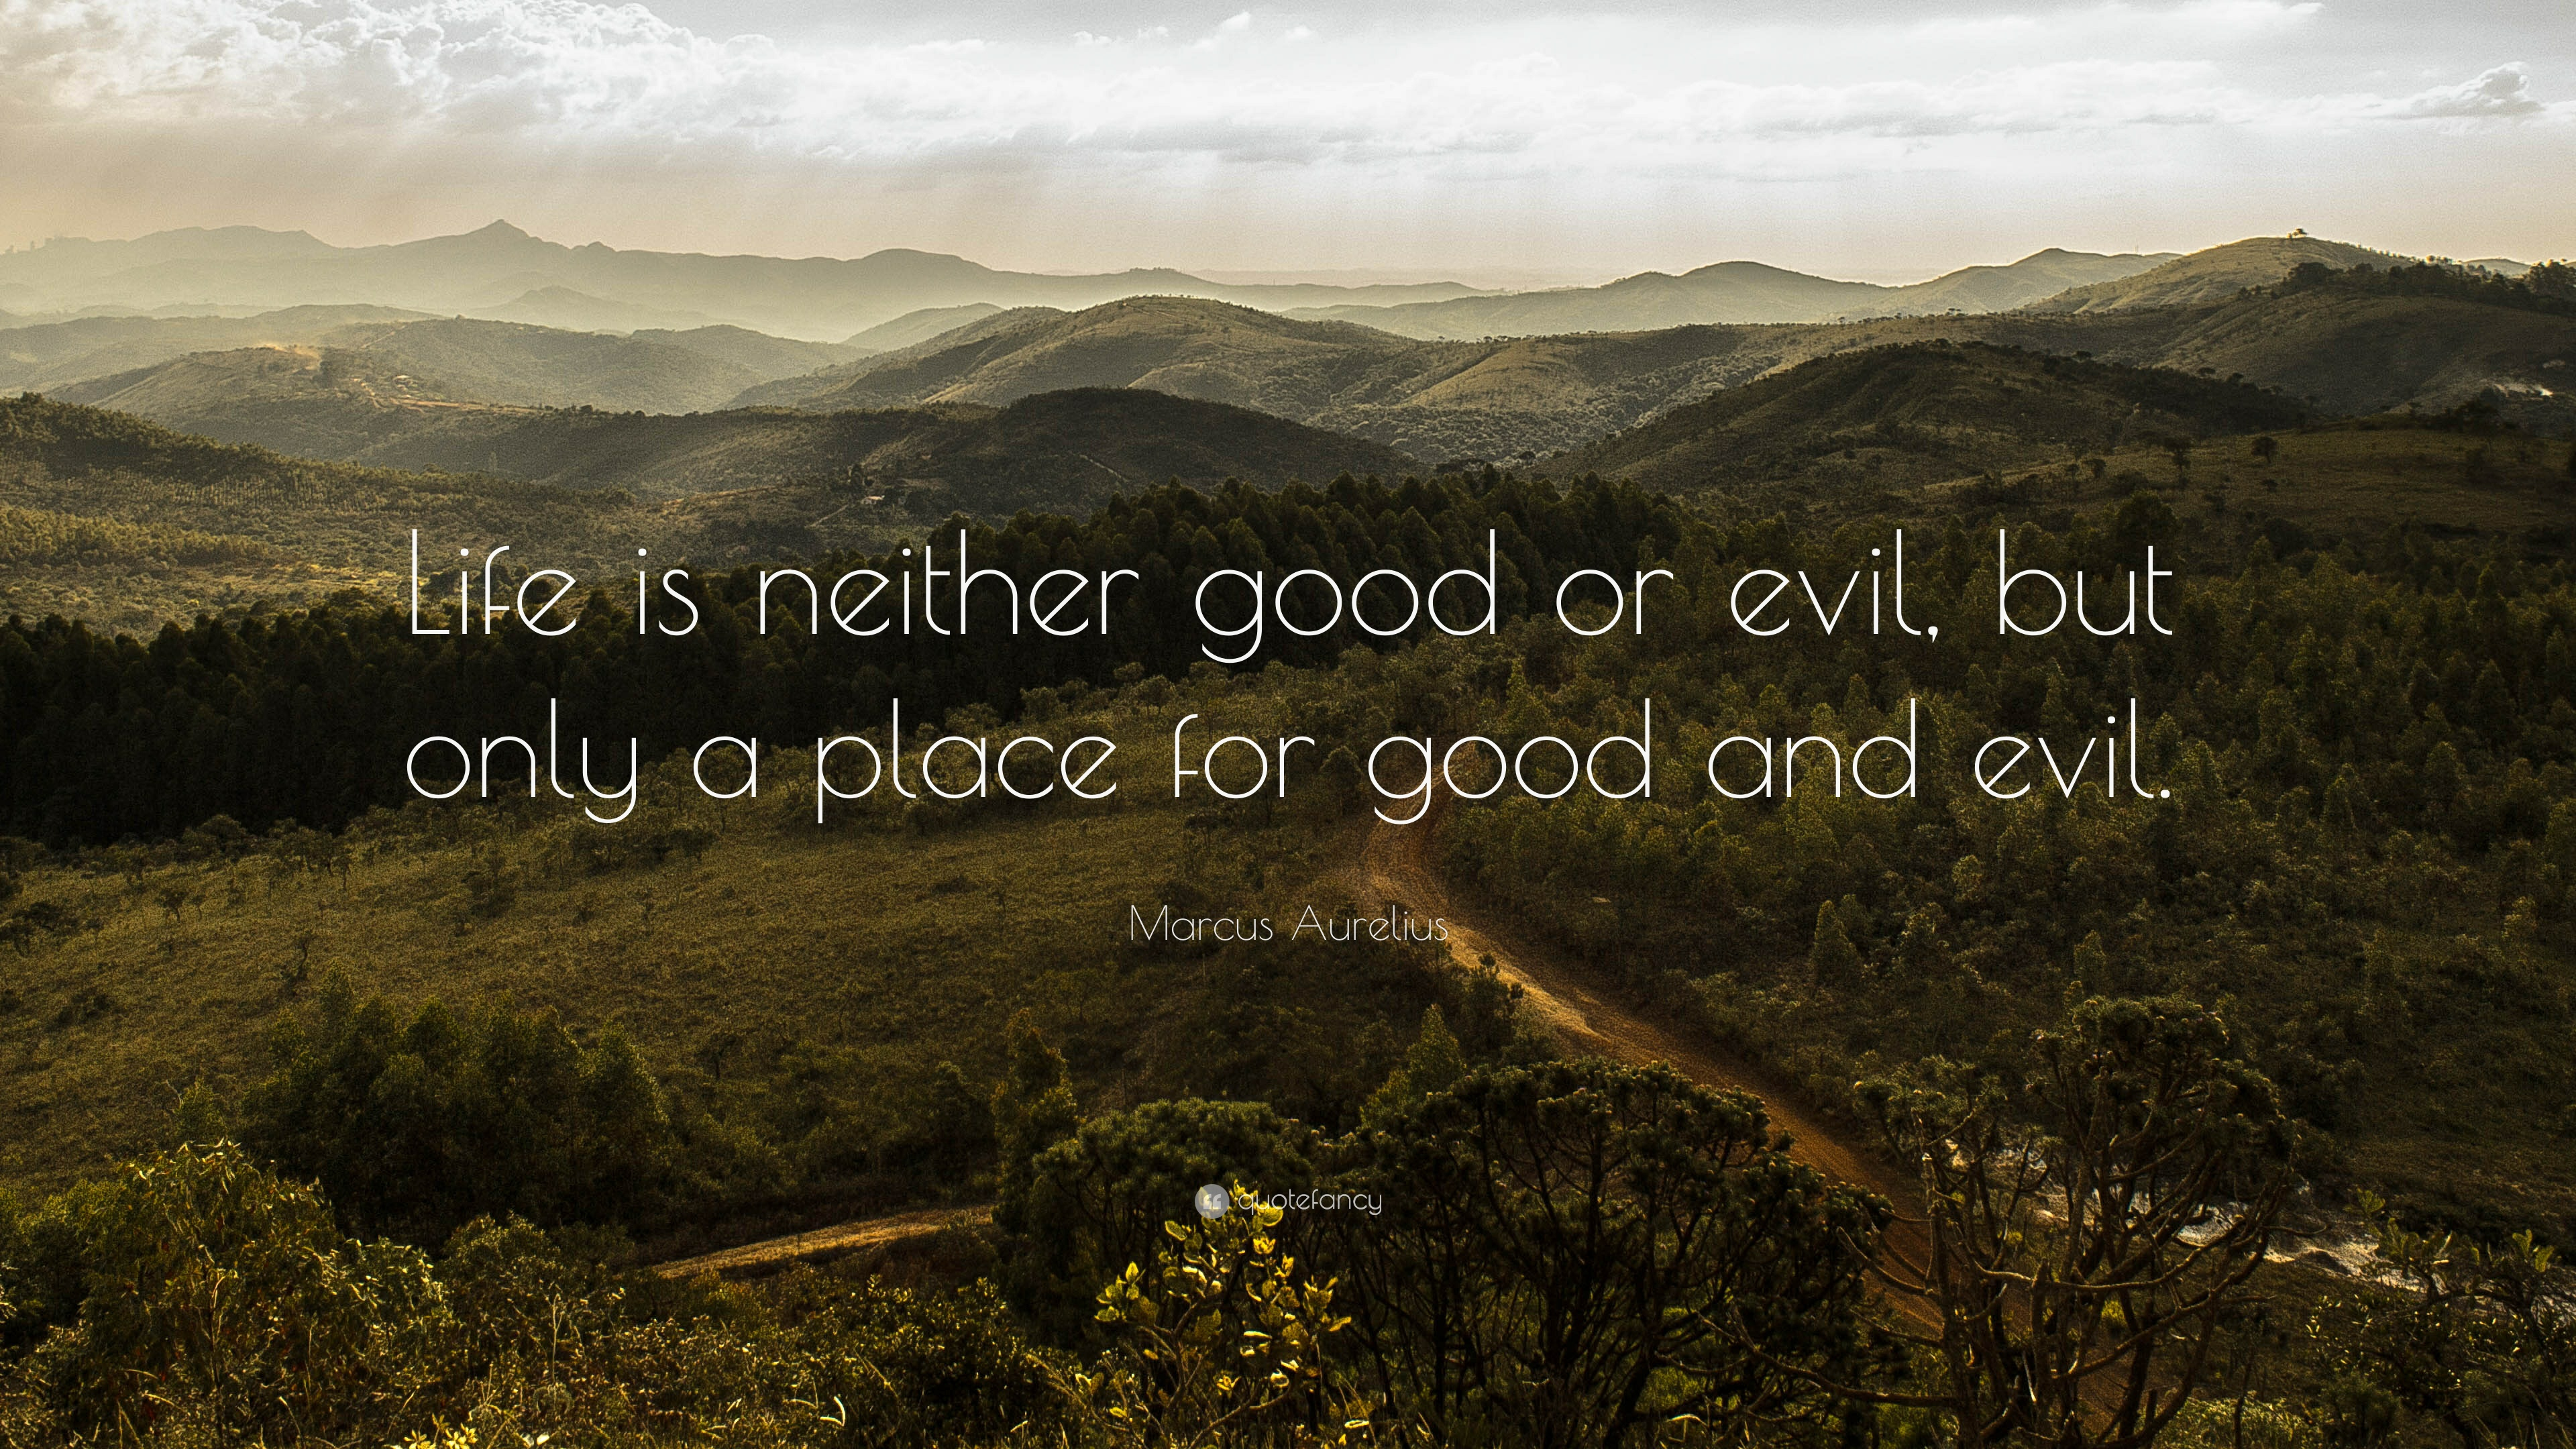 Marcus Aurelius Quote Life Is Neither Good Or Evil But Only A